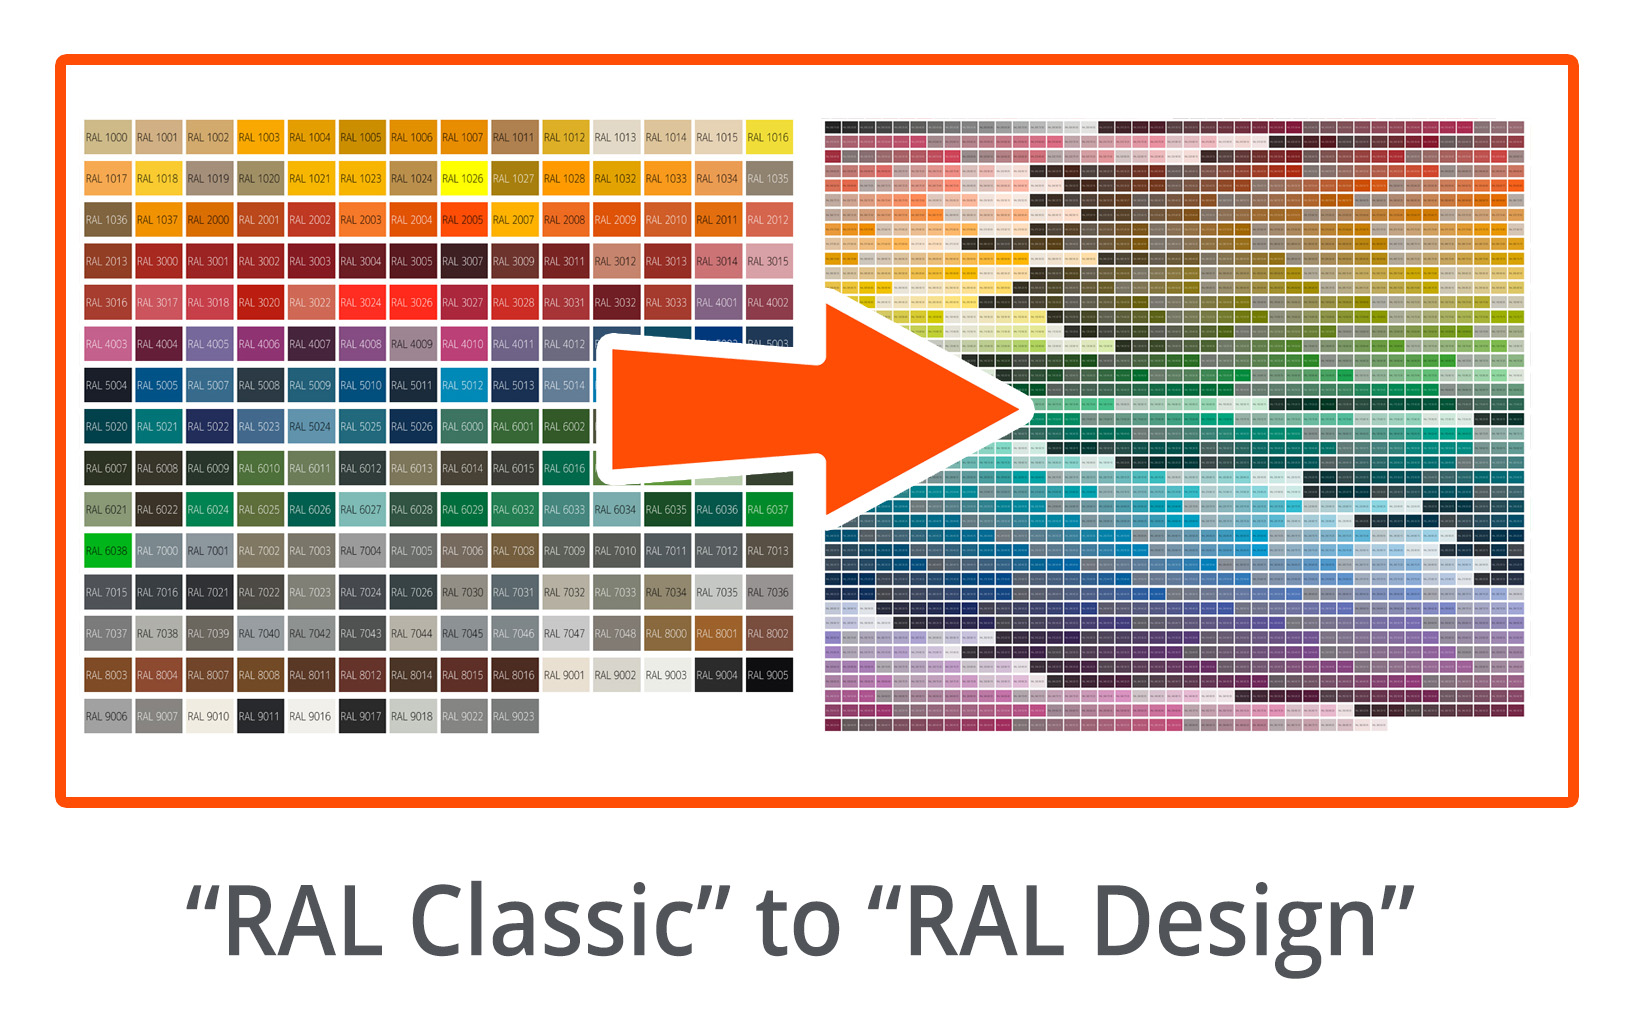 RAL Classic to RAL Design